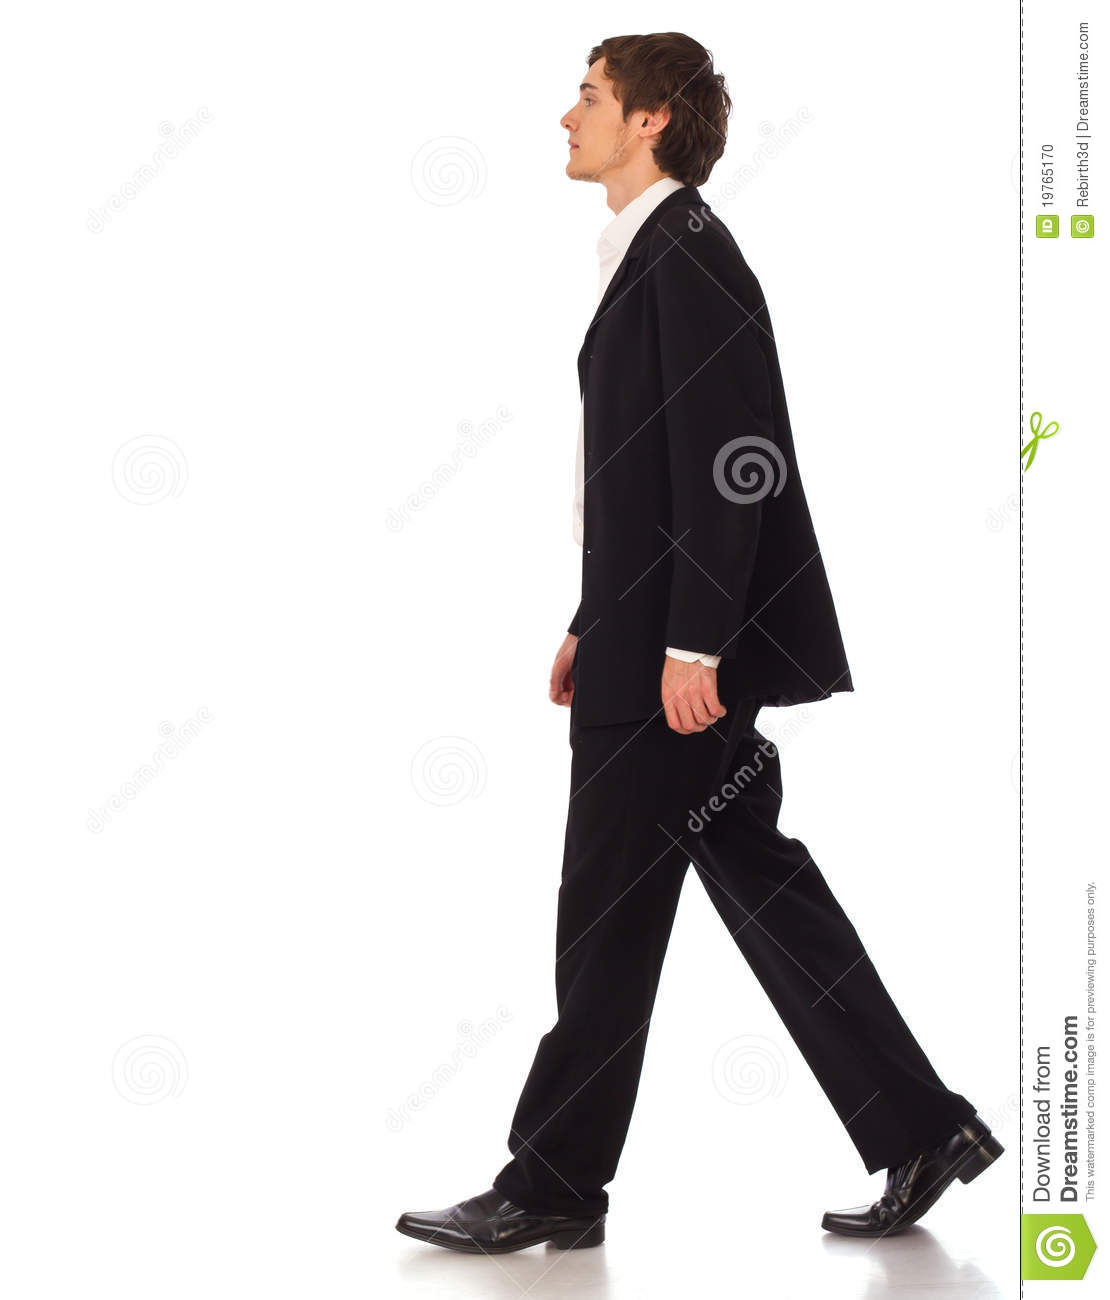 Business Man Walking Stock Photo - Image: 19765170